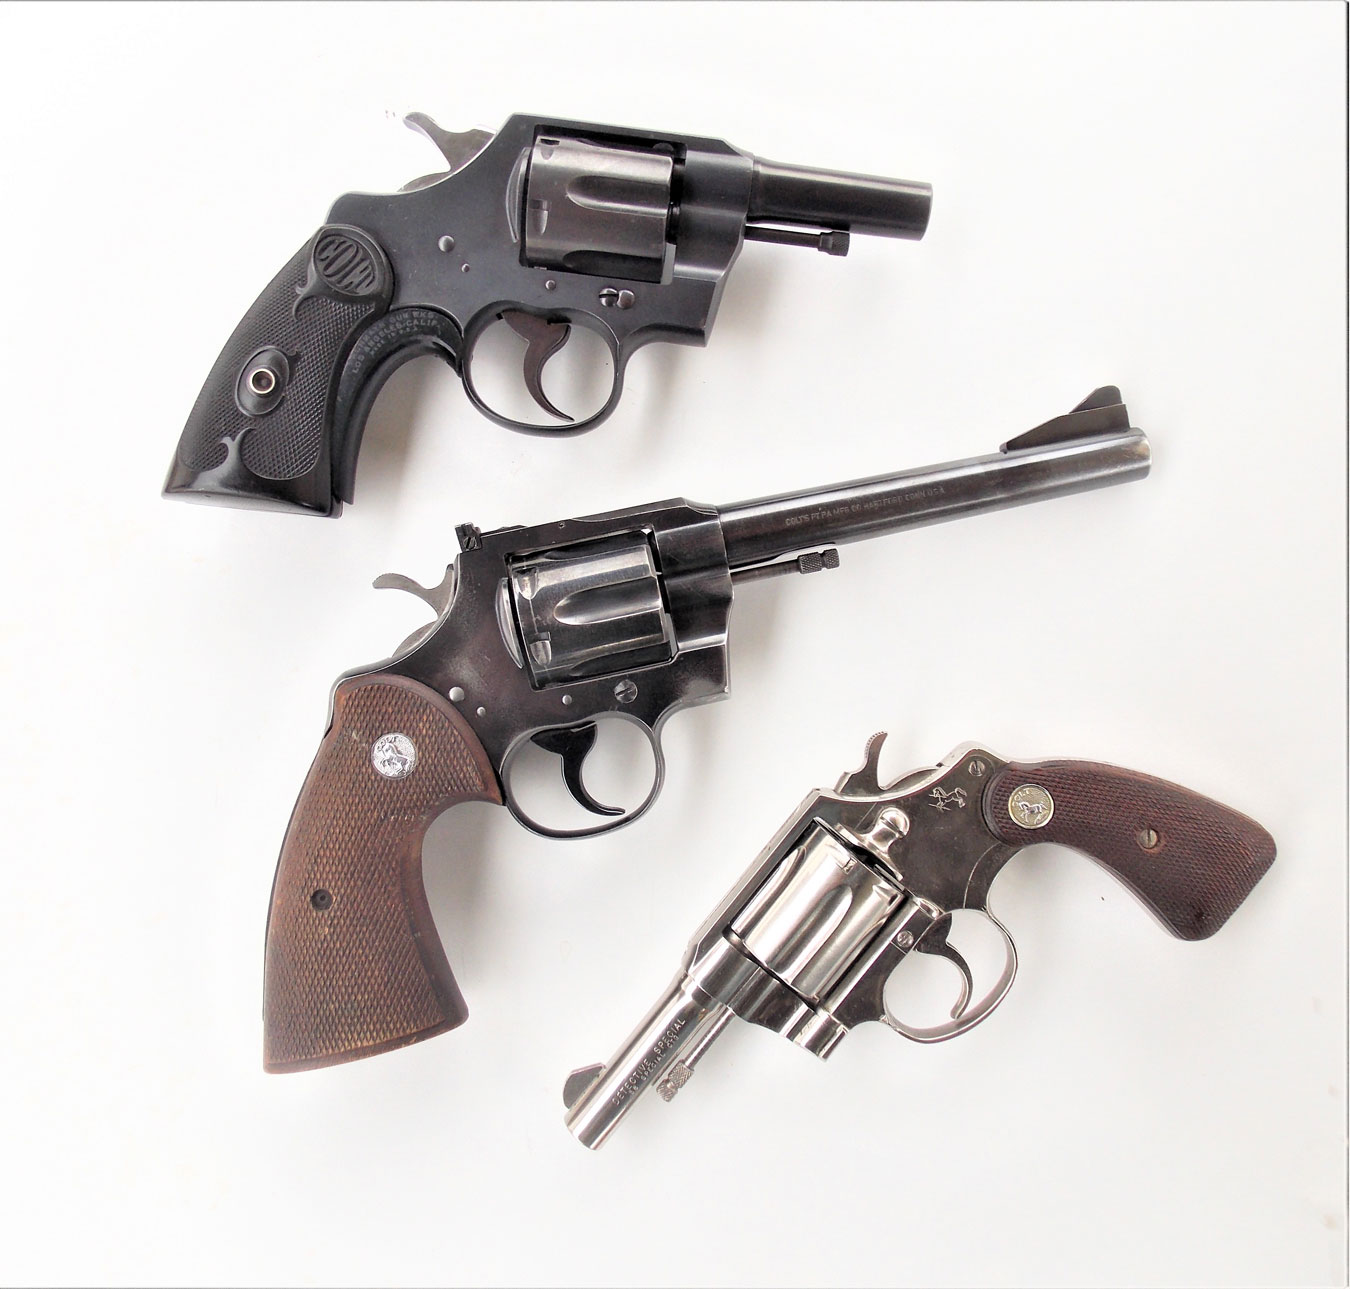 The Colt, half Fitz, and 3-inch detective special revolvers